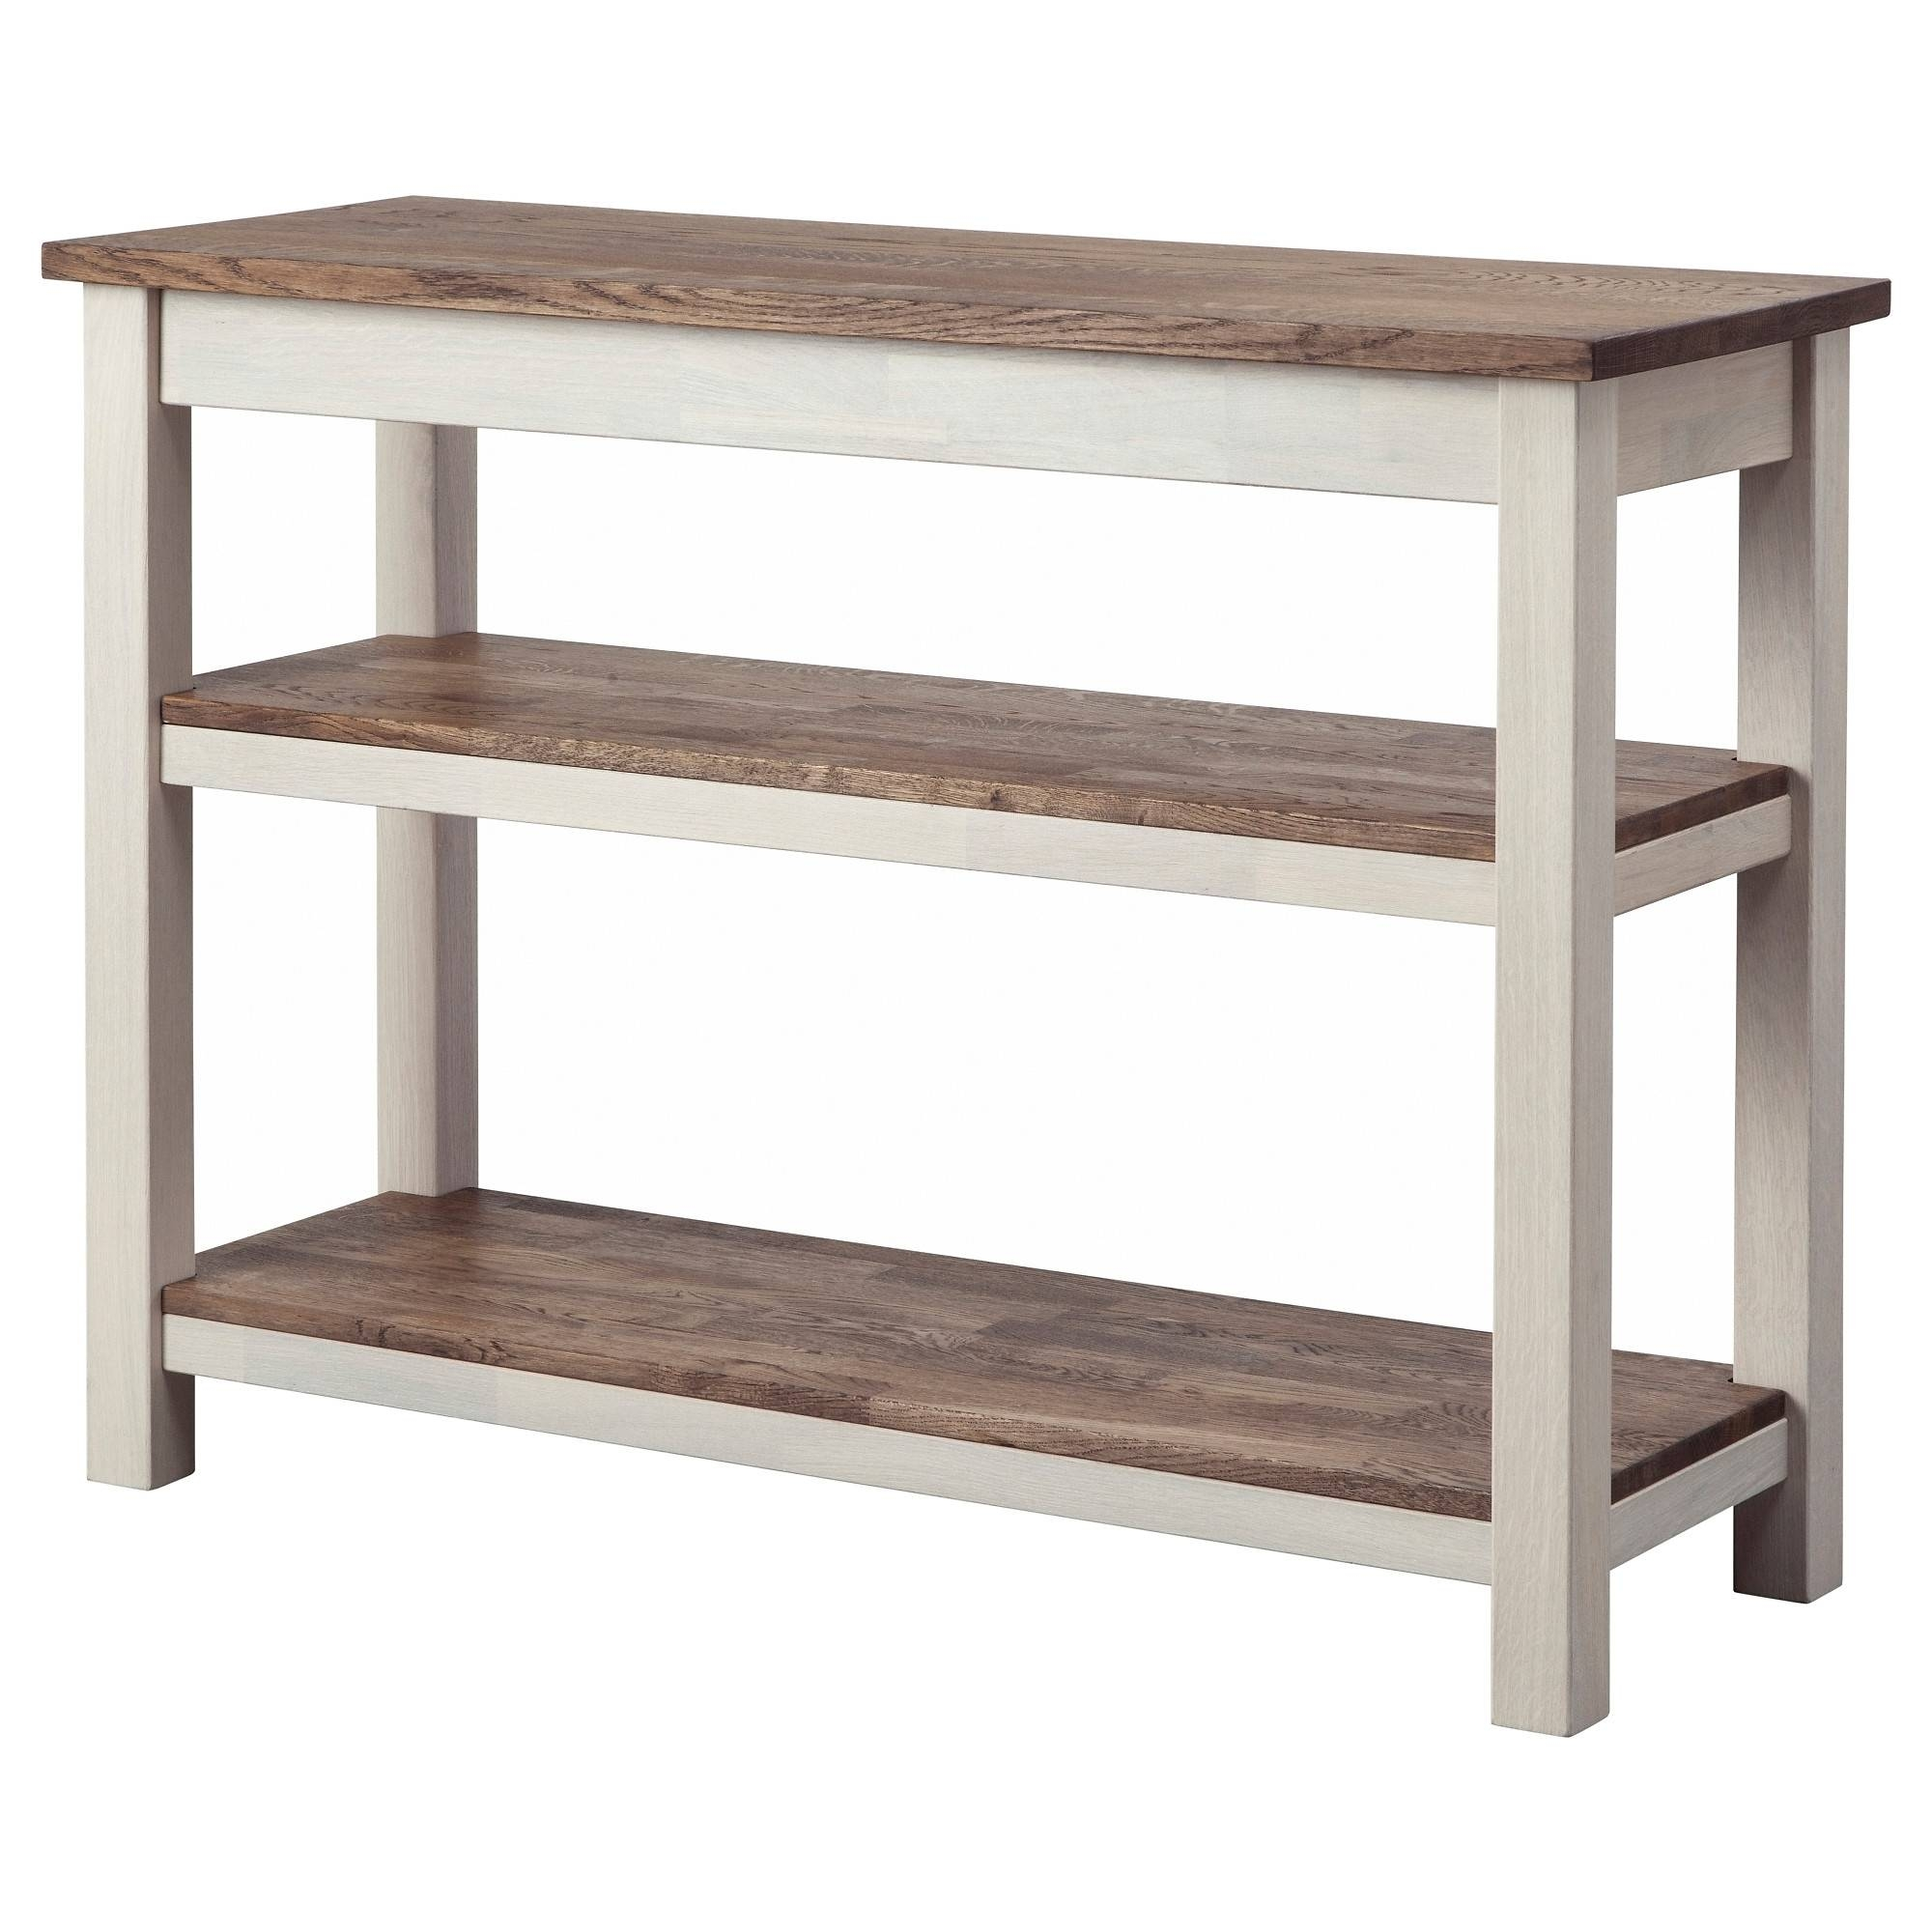 Console Tables, Sofa Tables & Sideboards – Ikea Throughout Best And Newest Norden Sideboards (View 15 of 15)